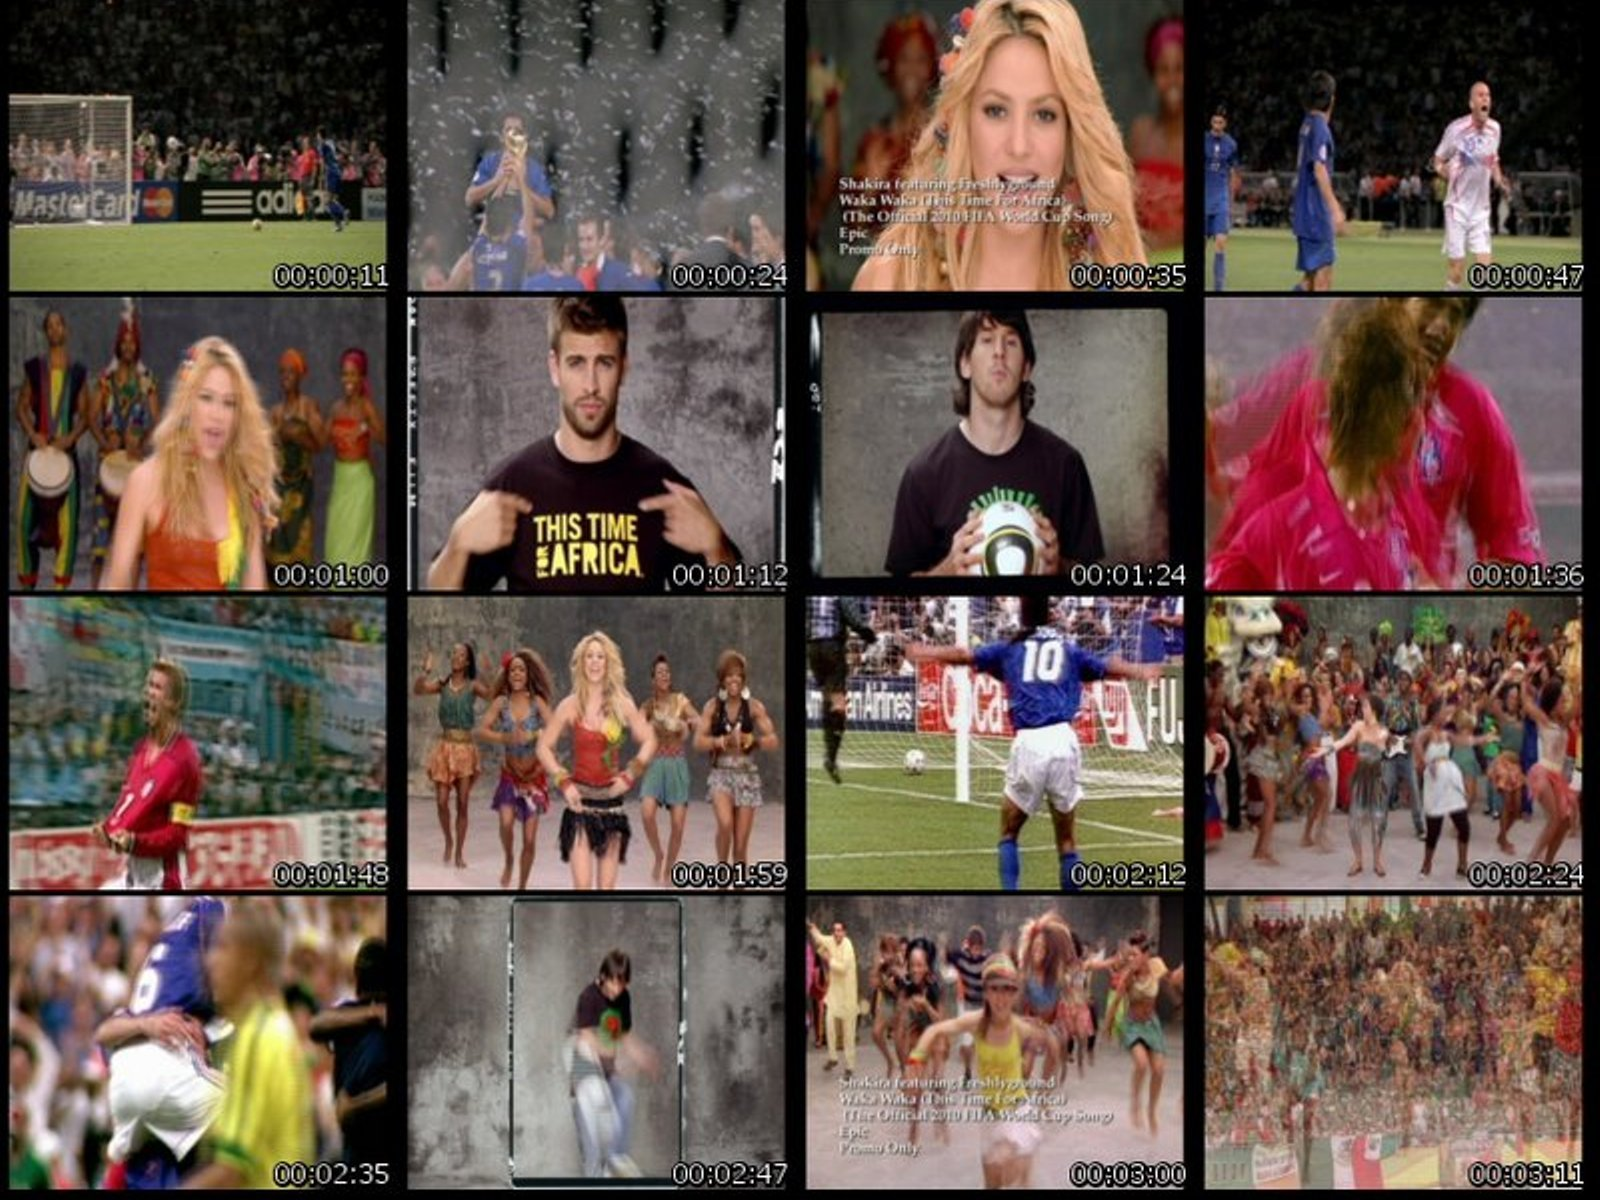 The dimension of image is 1131 x 612 px, shakira waka waka world cup 70721 these wallpapers are available for your